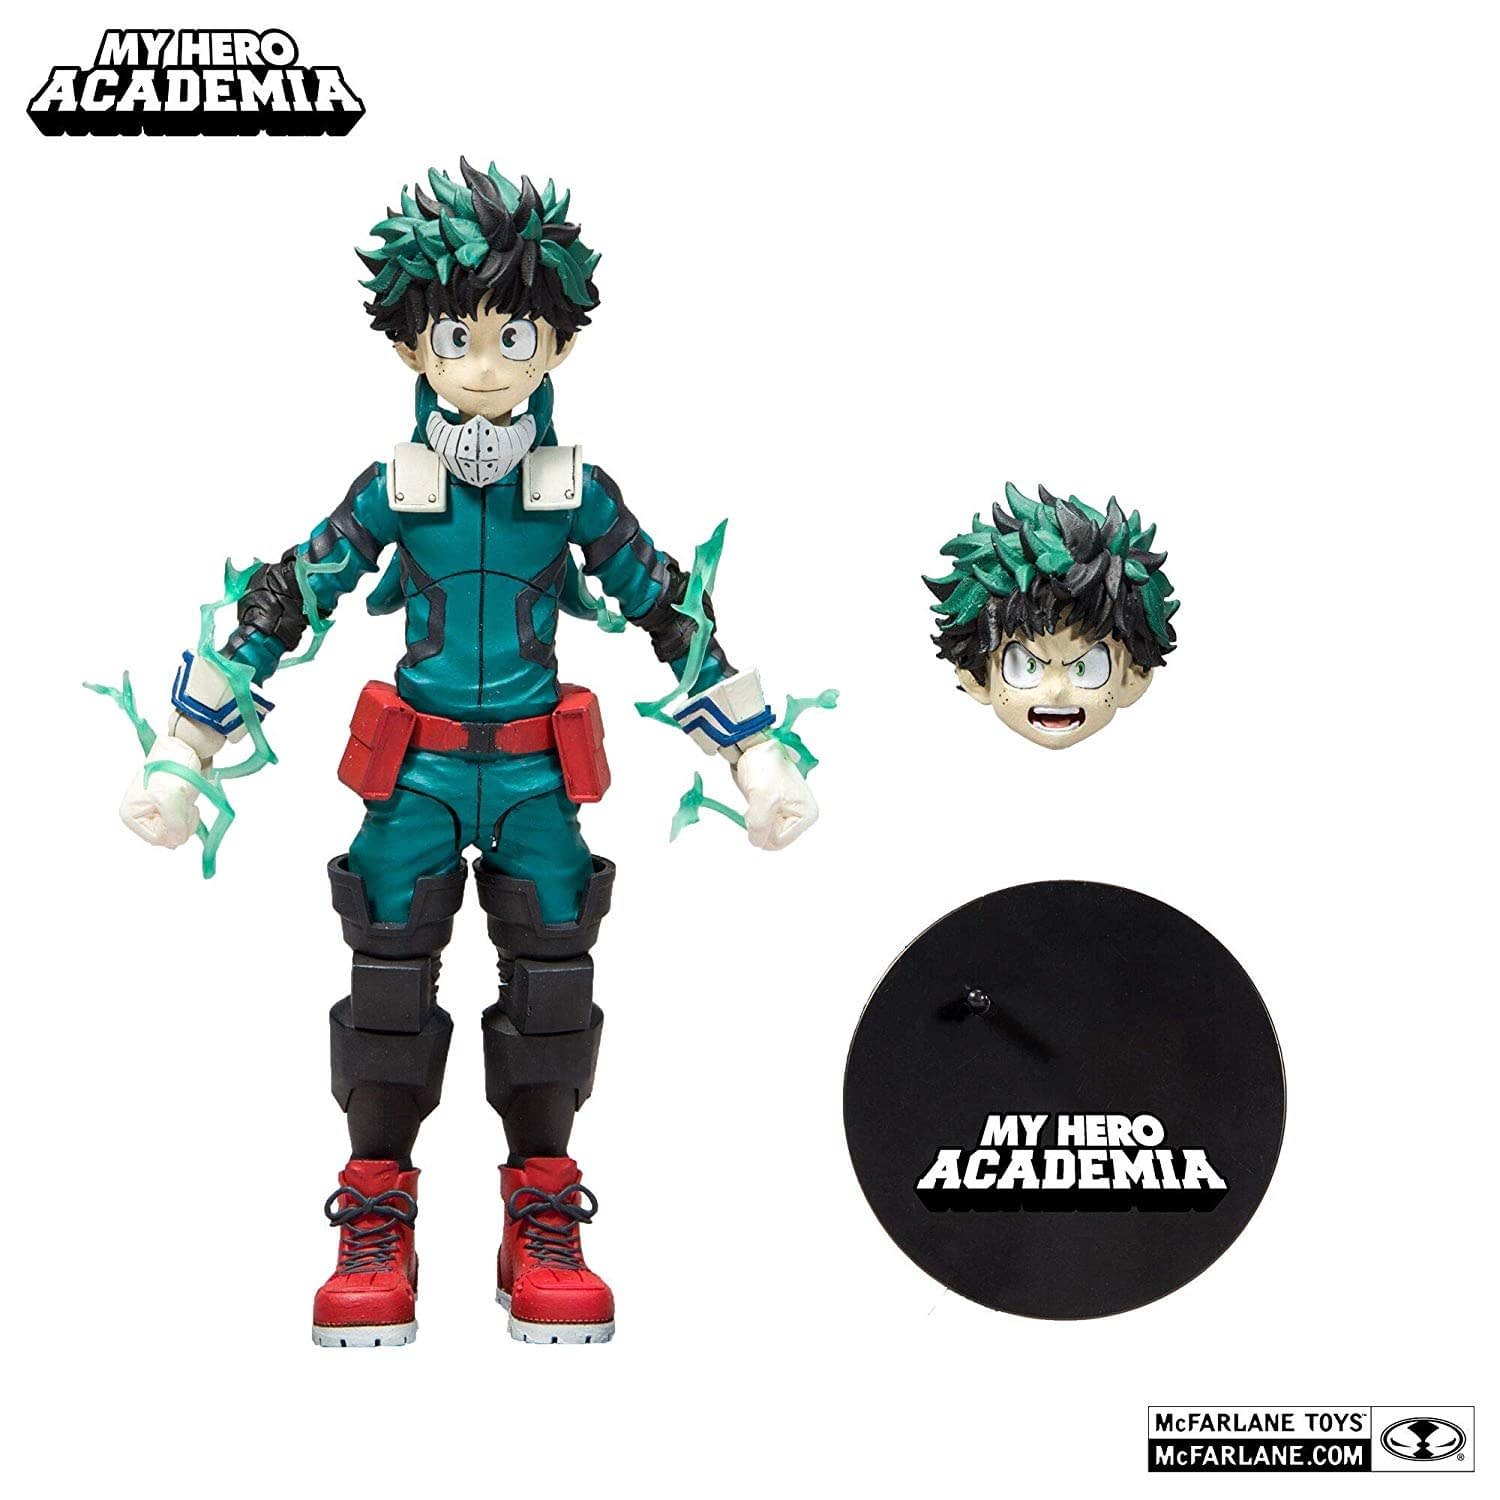 My Hero Academia Holiday Guide is Plus Ultra